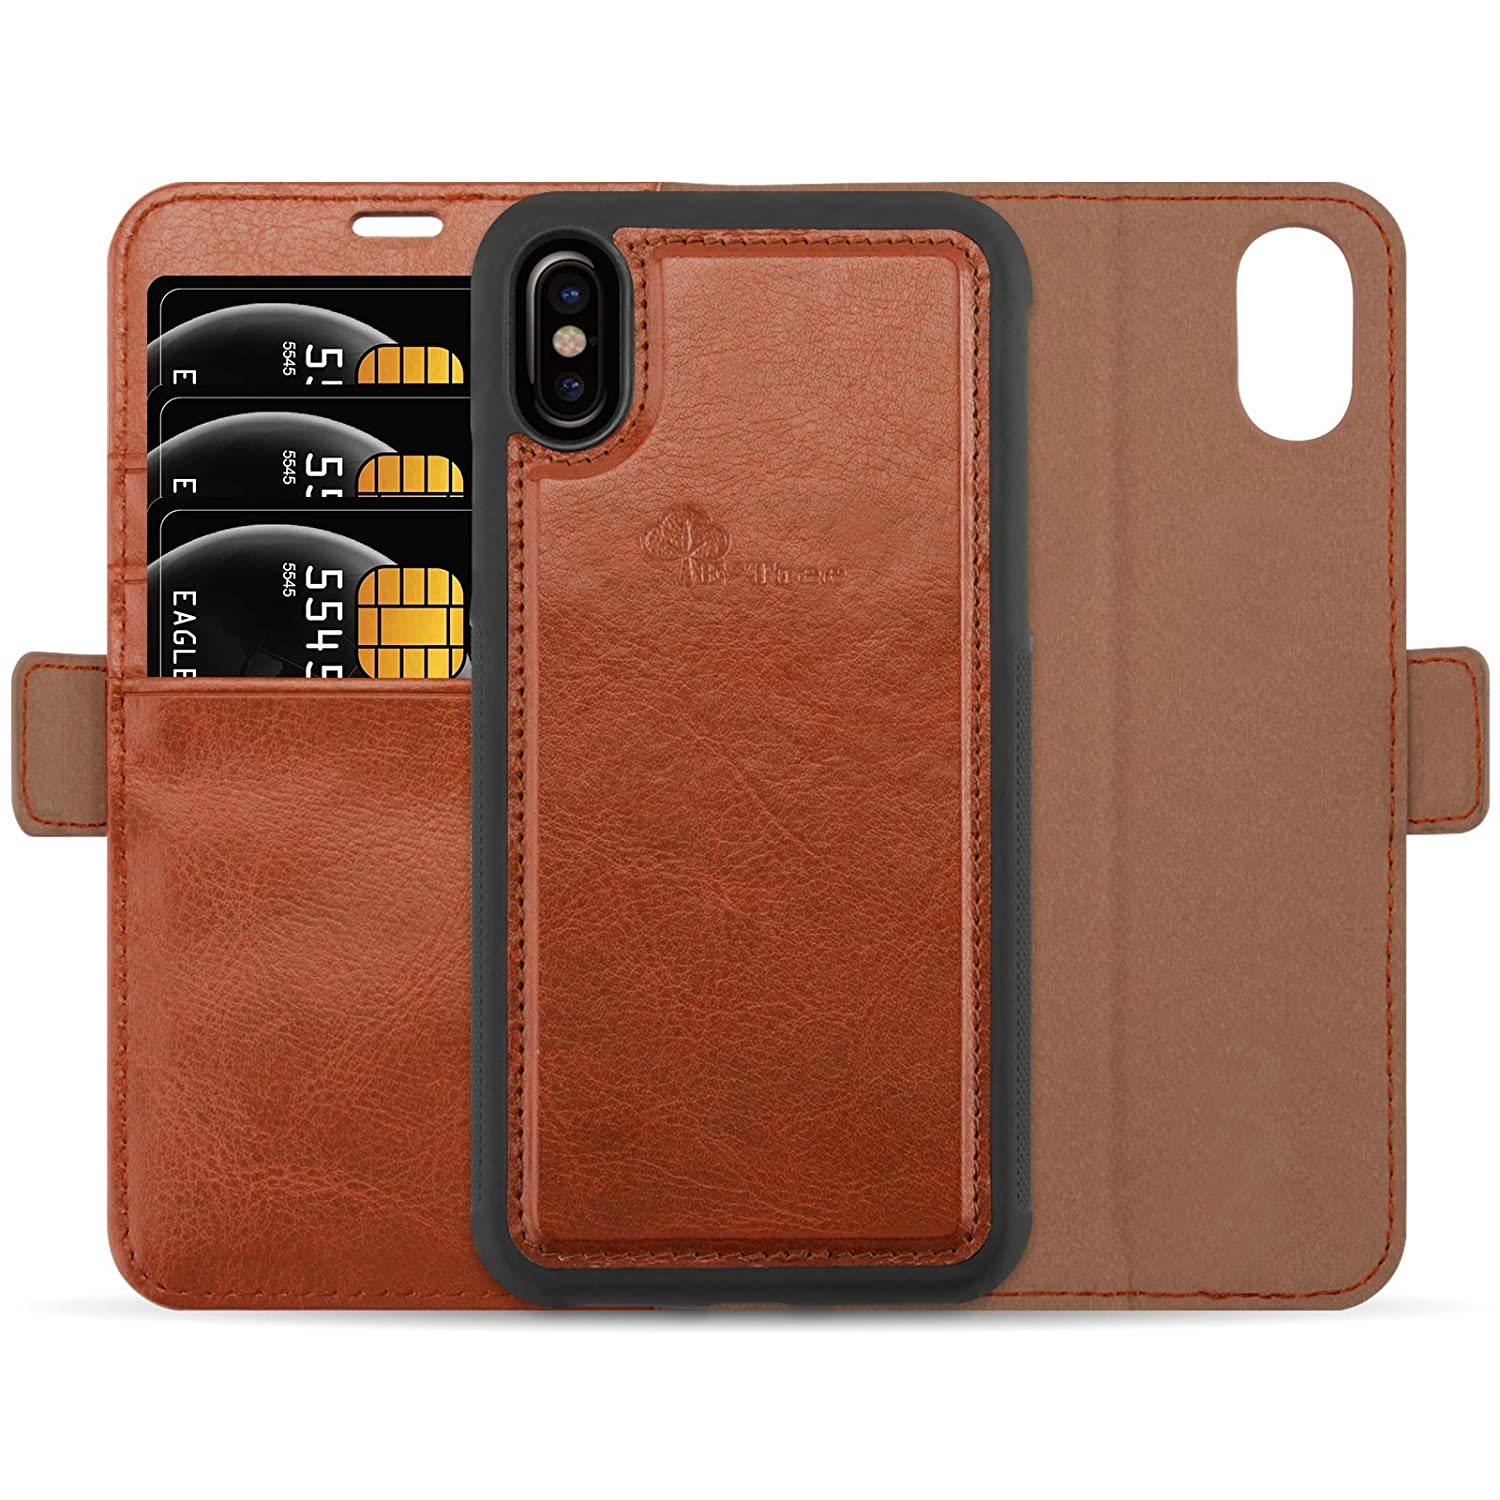 iPhone X Case, iPhone 10 Case, E-Tree Leather Detachable Wallet Case, RFID Blocking, Magnetic Flip Folio Card Slot Kickstand Stand Cover for 2017 Apple iPhone X Edition (5.8 inch) - Brown RFID_I7P_01